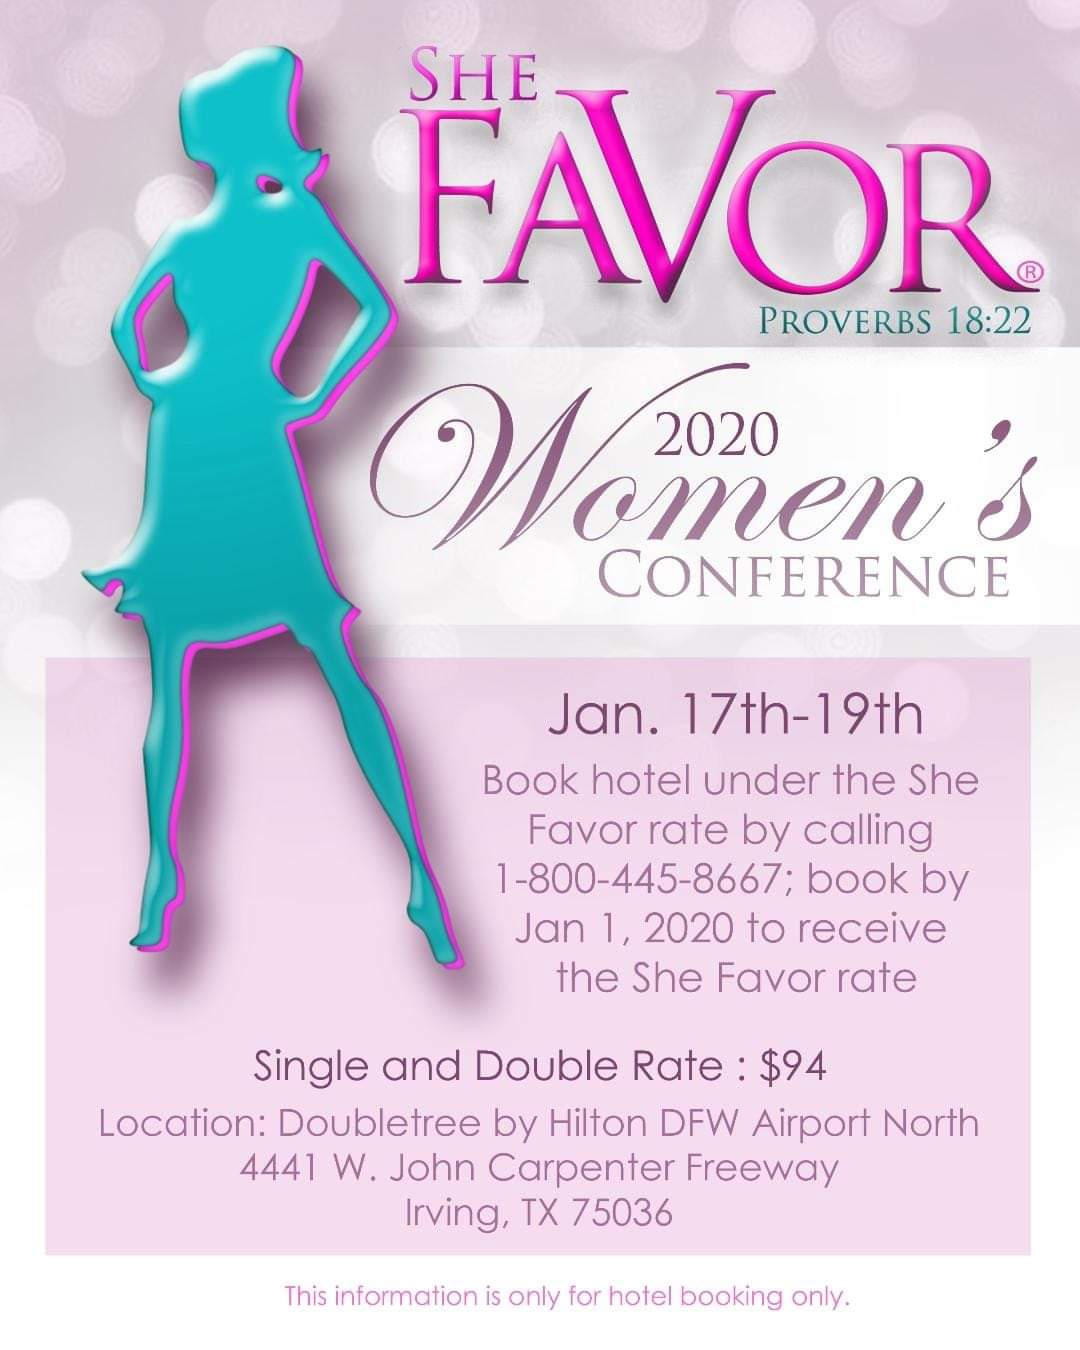 Shuttles will be provided from DFW Airport to the hotel